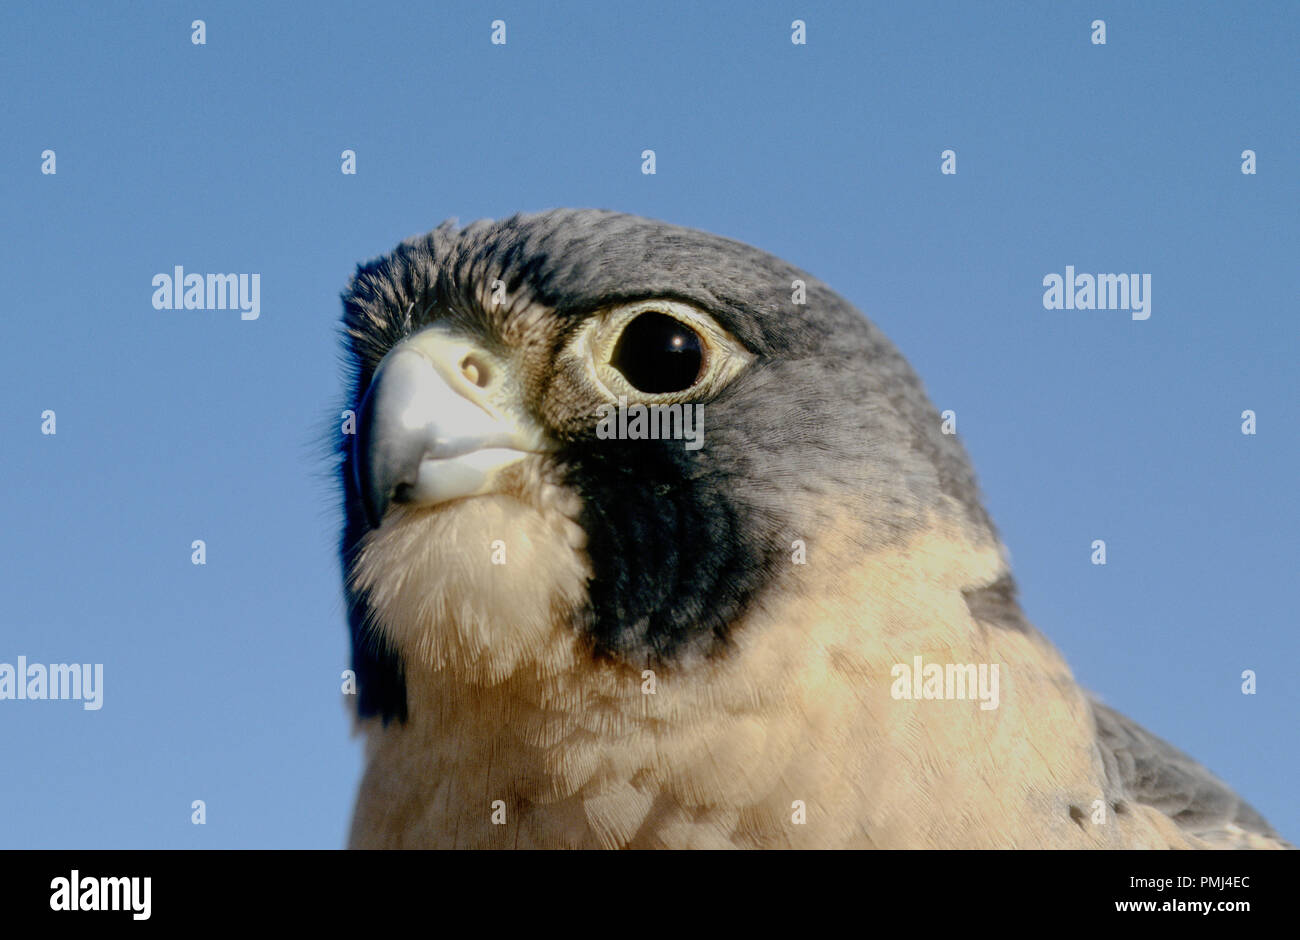 Peregrine falcon (captive; Falco peregrinus) at the World Center for Birds of Prey, Boise, Idaho USA - Stock Image